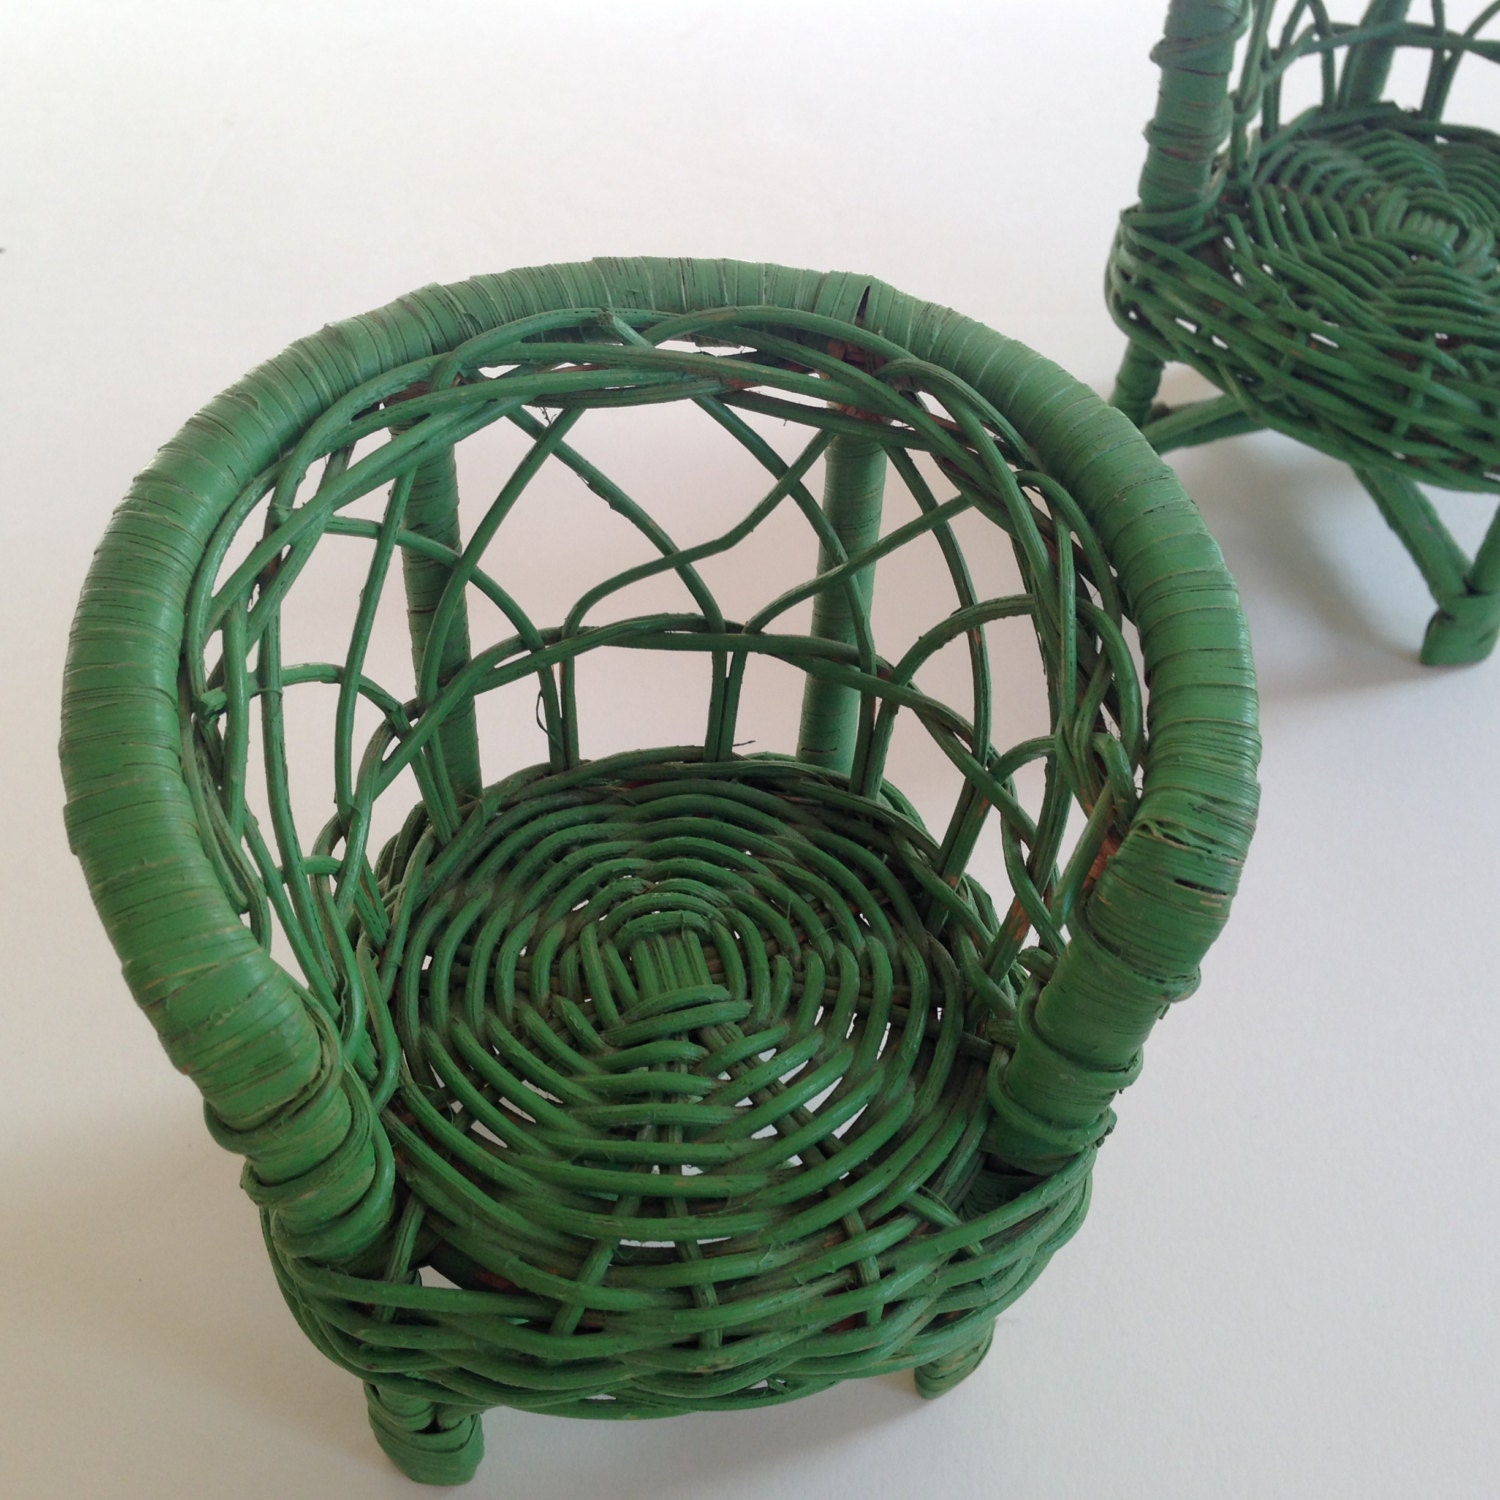 Etsy Vintage Bamboo Furniture: TOY WICKER Furniture Green Armchairs Doll House Miniature